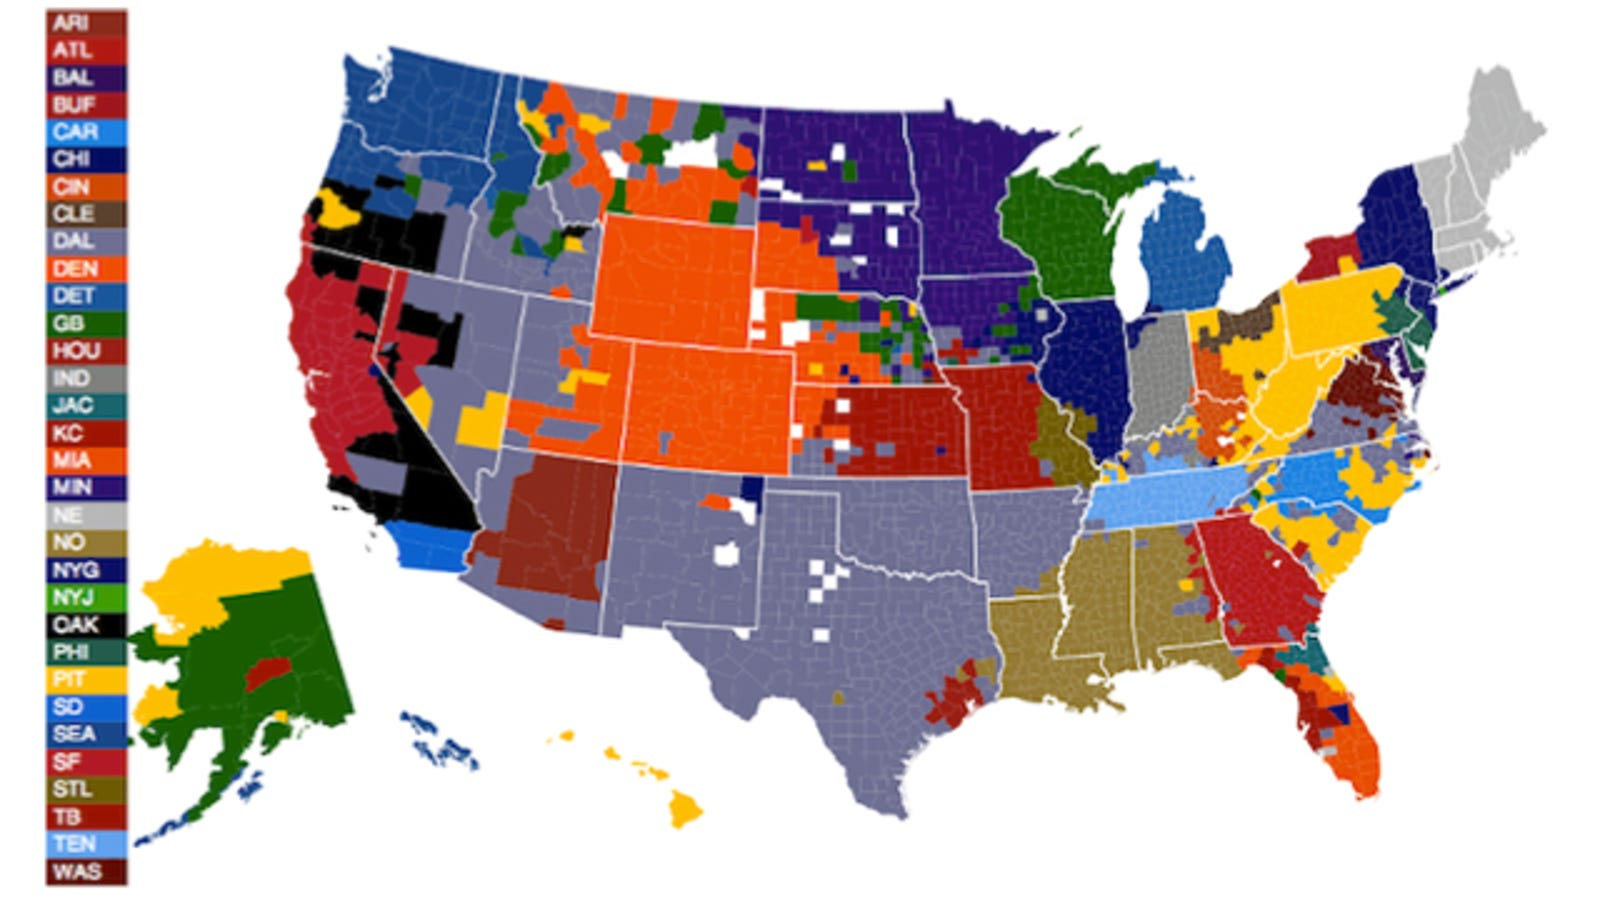 Nfl Us Map.Nfl Fans By U S County According To Facebook